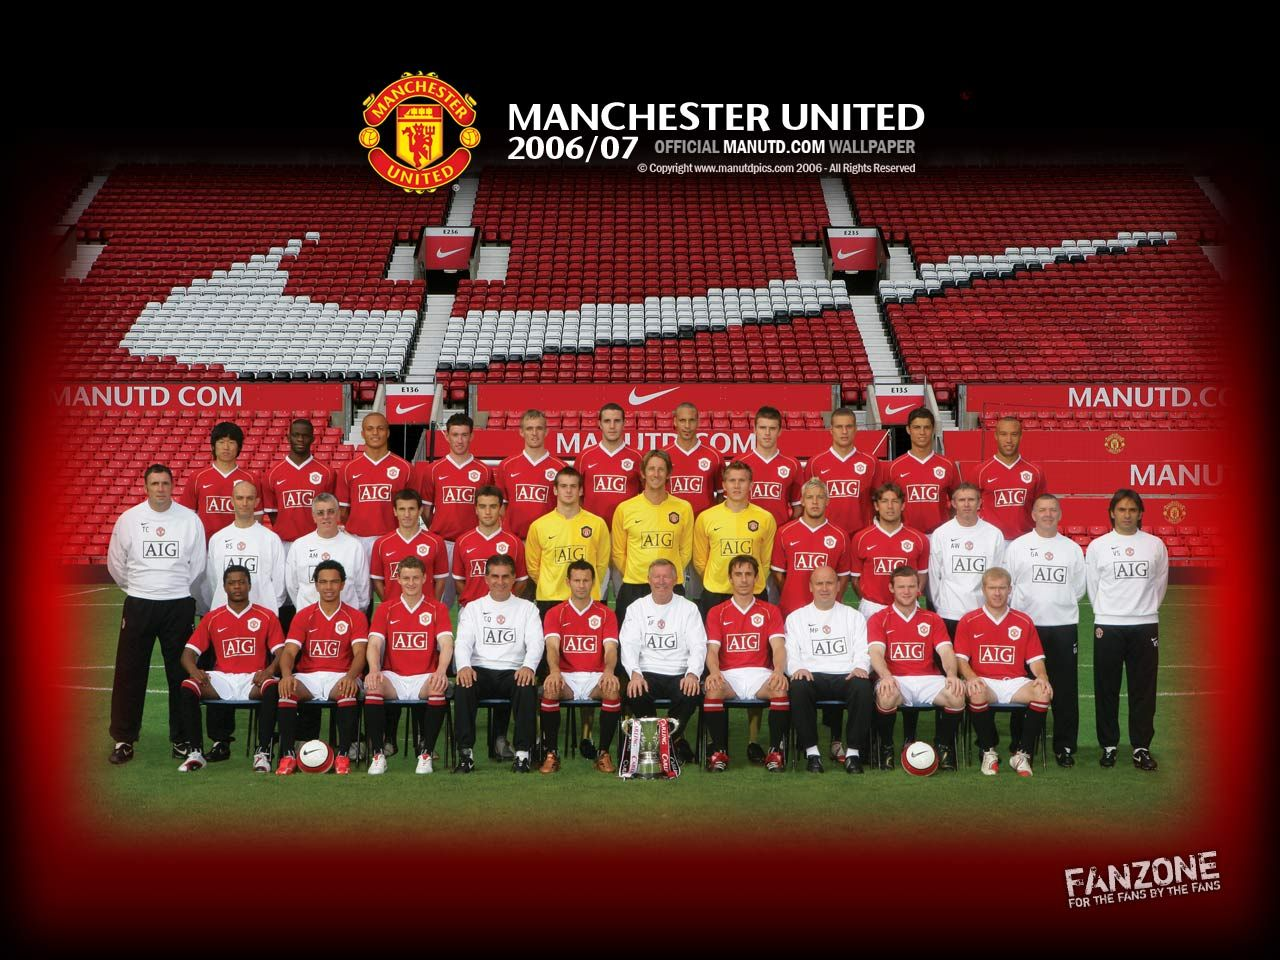 manchester united wallpaper | desktop wallpapers - free hd wallpapers